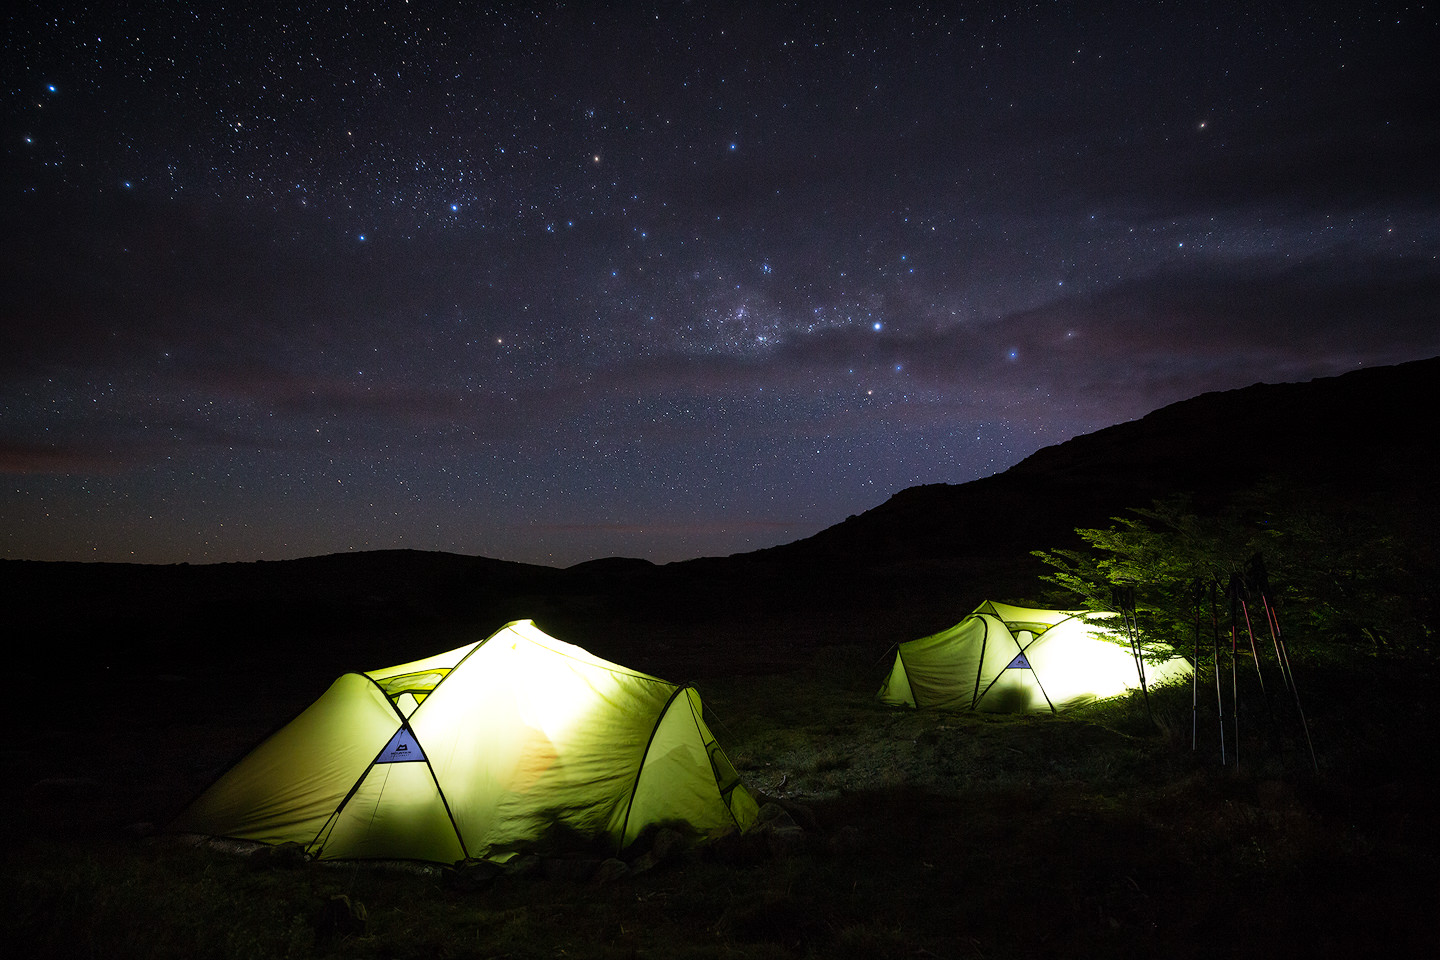 Two tents under the stars.